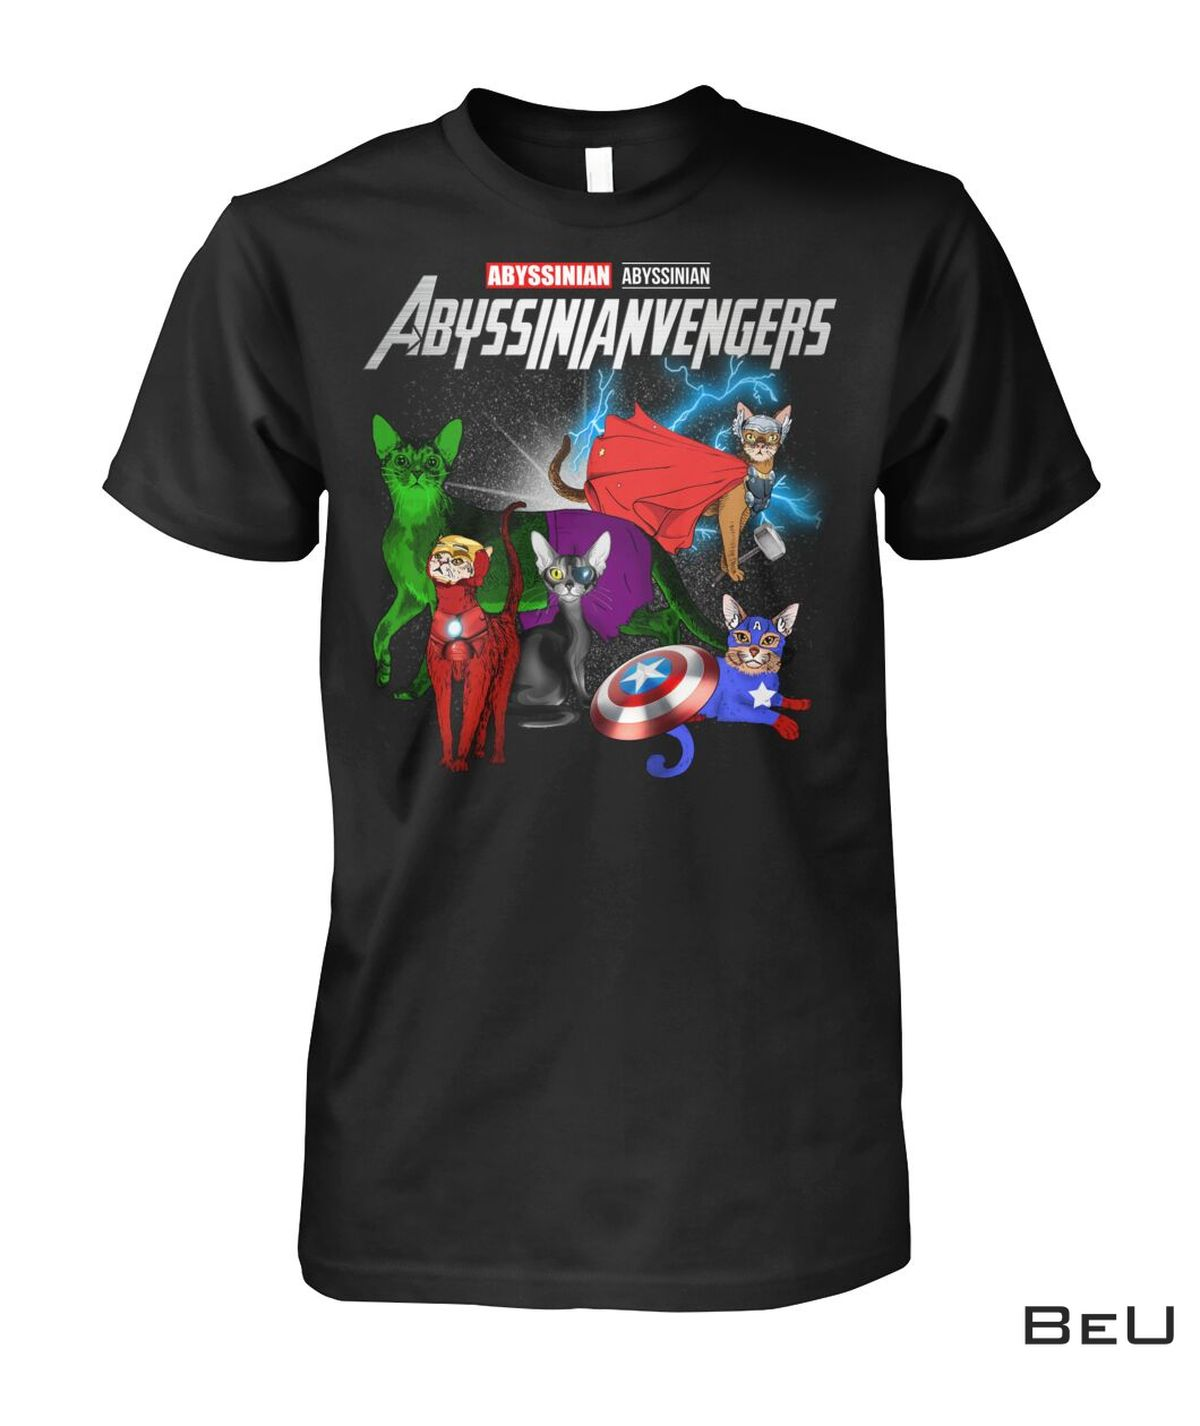 Abyssinianvengers Abyssinian Cat Avengers Shirt, hoodie, tank top